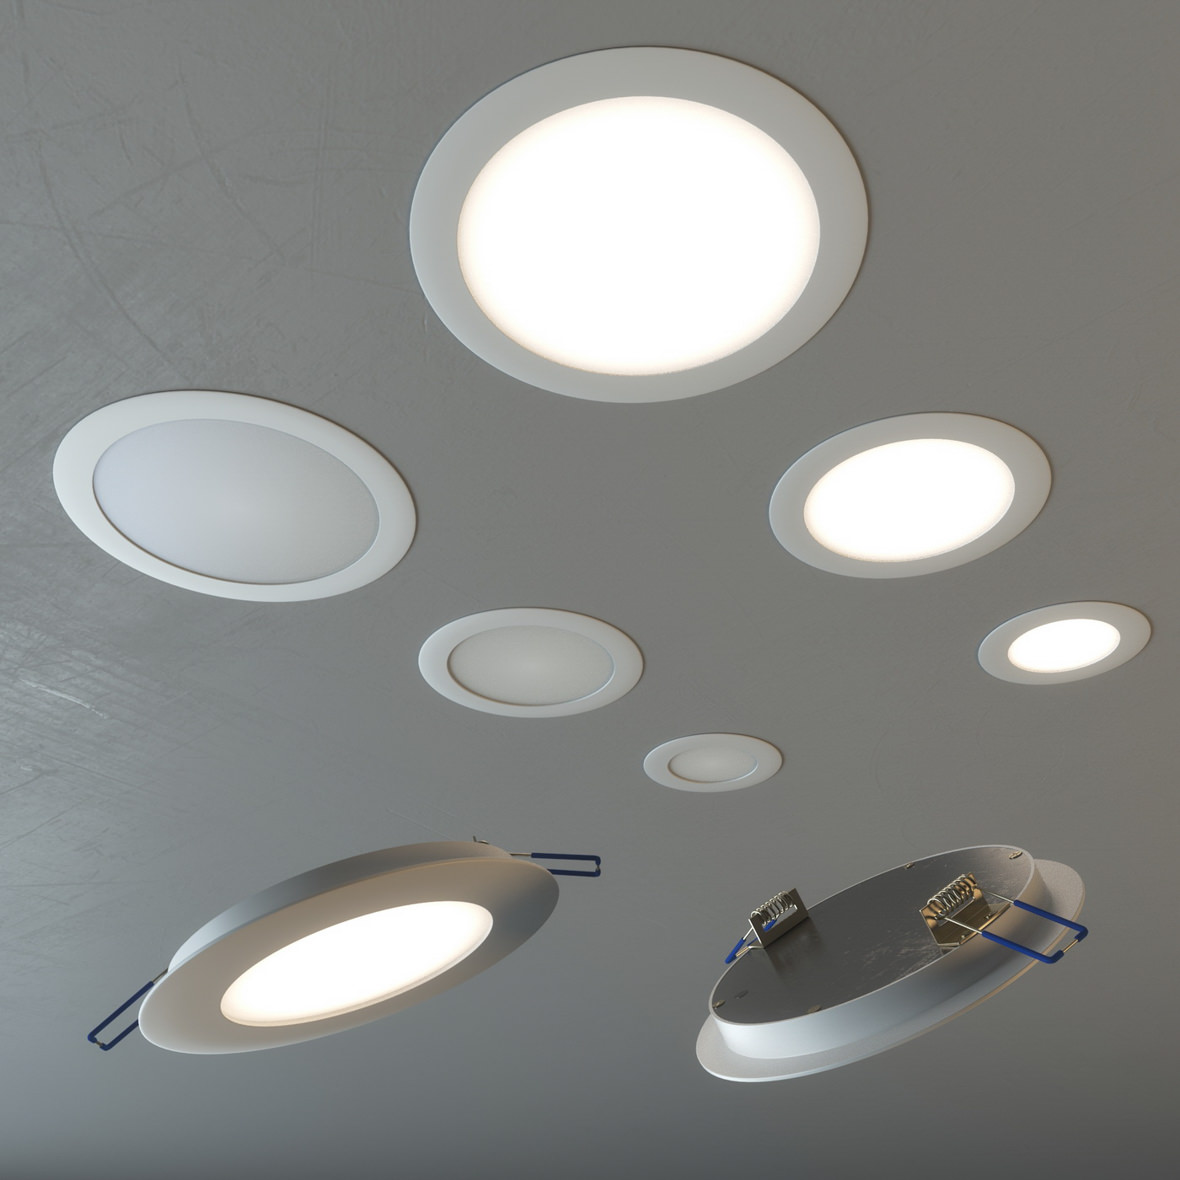 Photorealistic 3D rendering of round lamps fitted in the ceiling